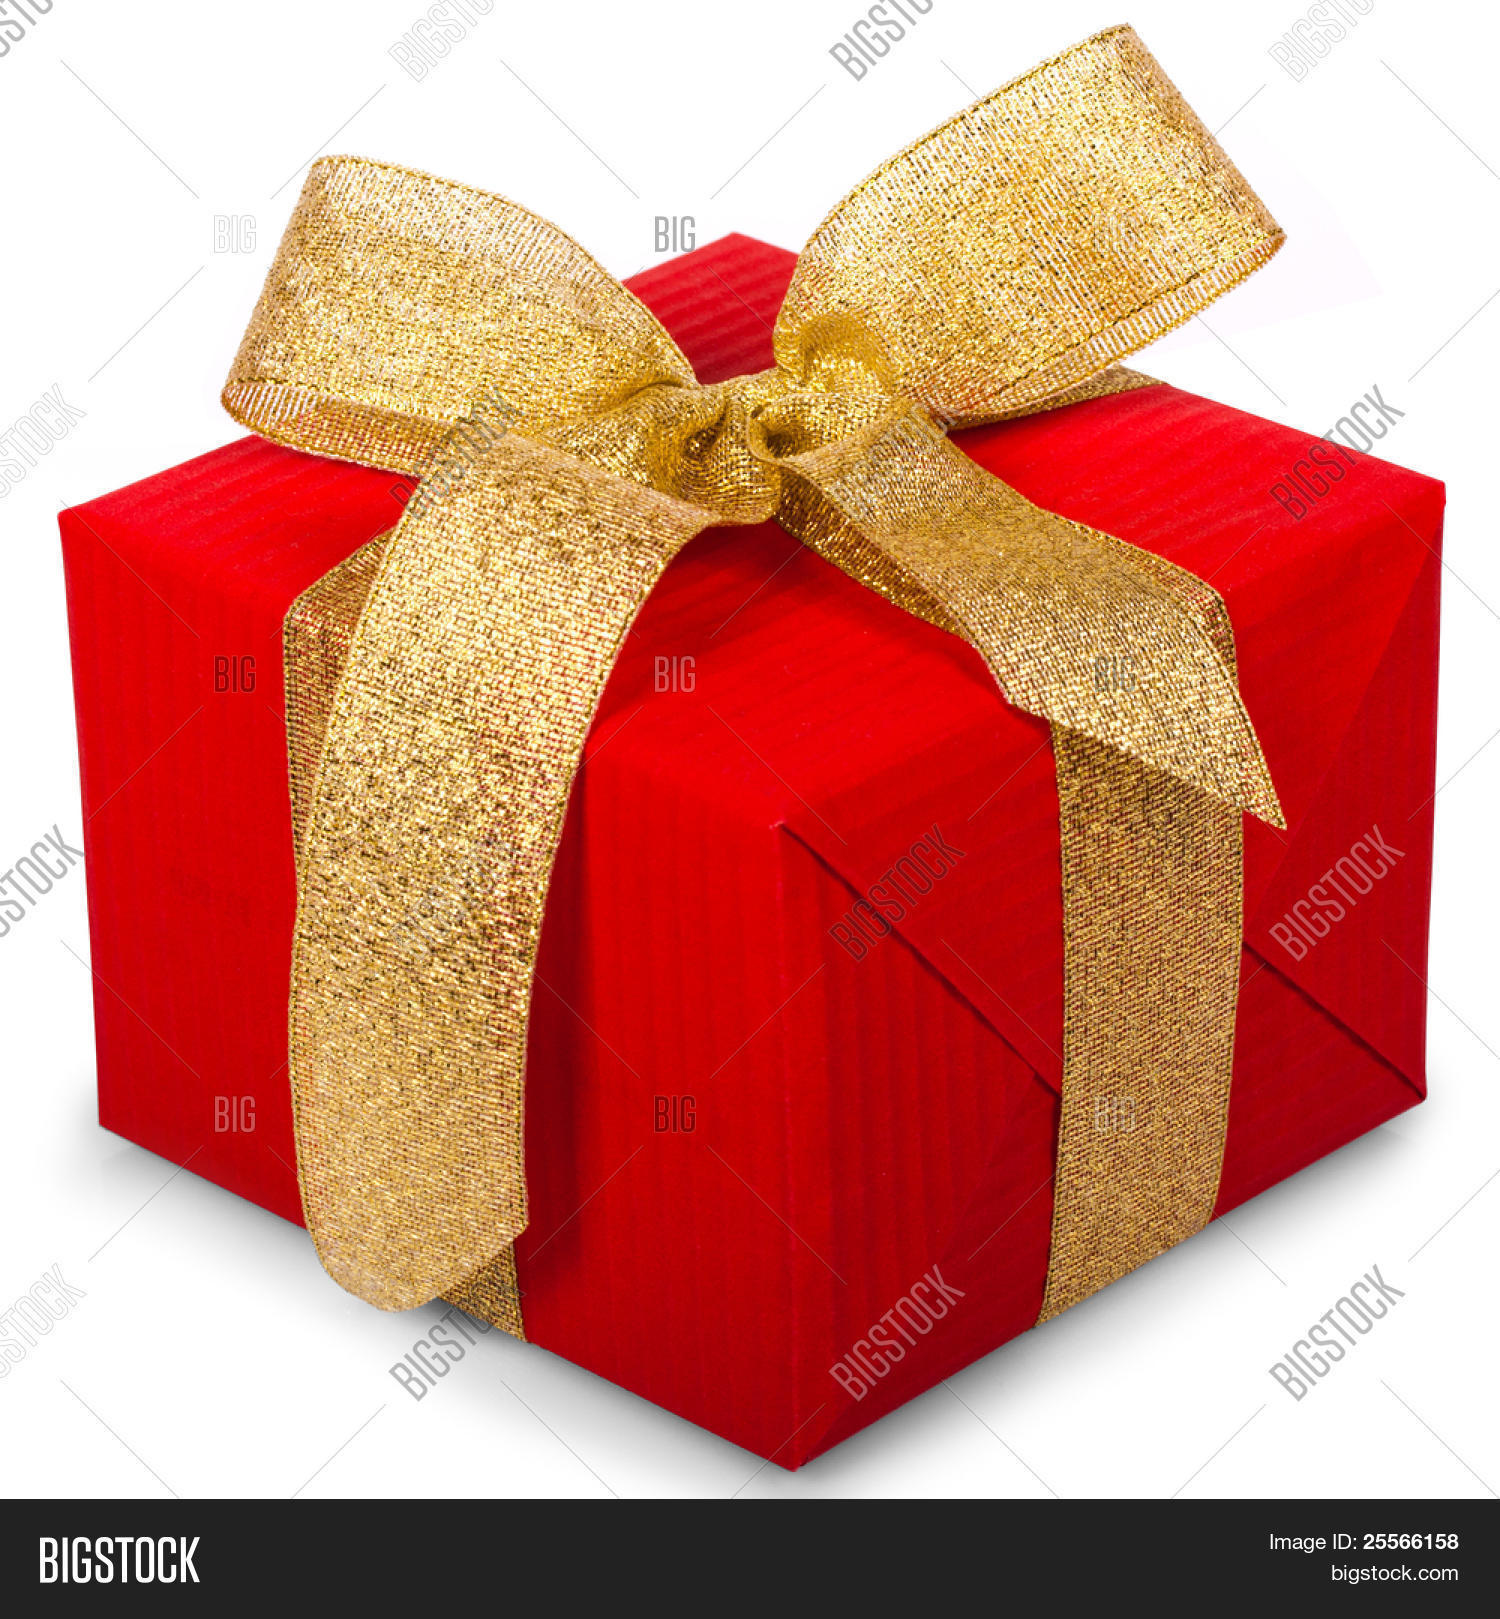 Christmas gift box image photo free trial bigstock christmas gift box with a gold ribbon bow isolated on white background negle Images